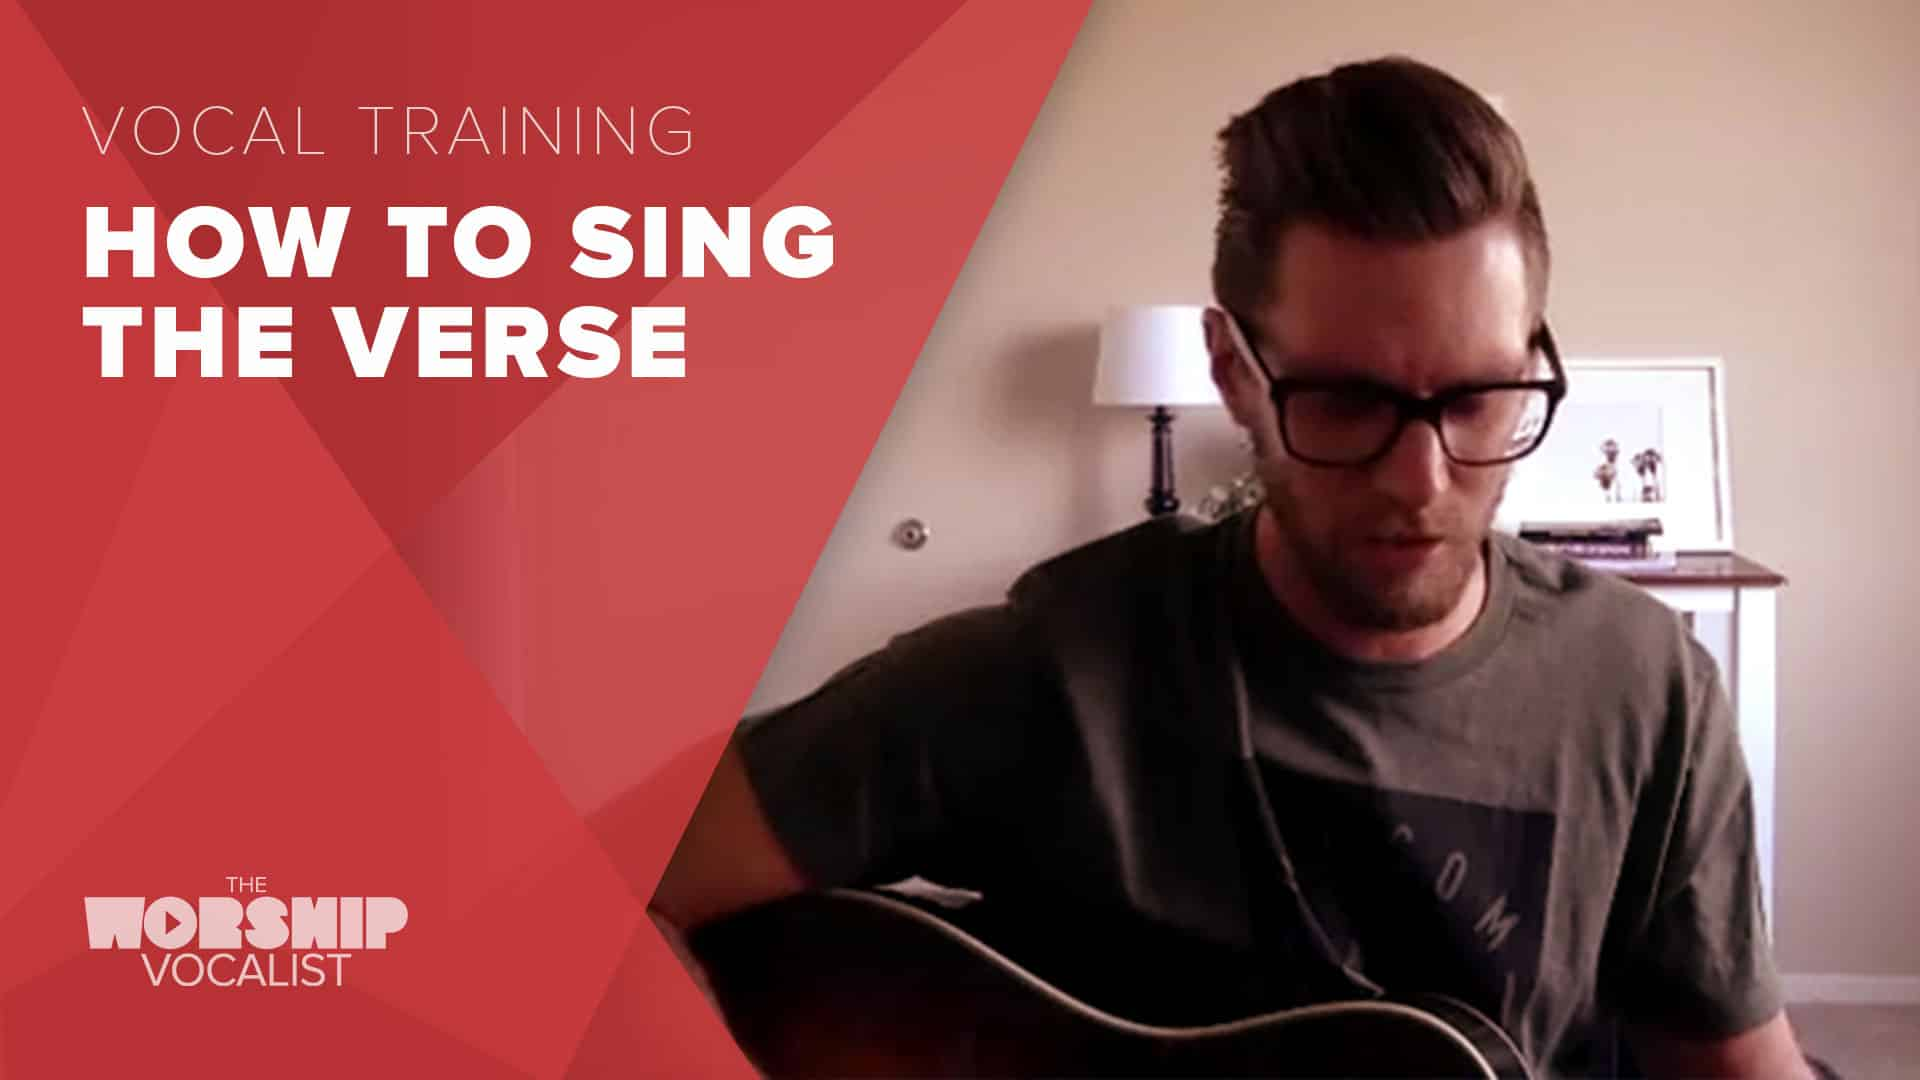 How to Sing the Verse